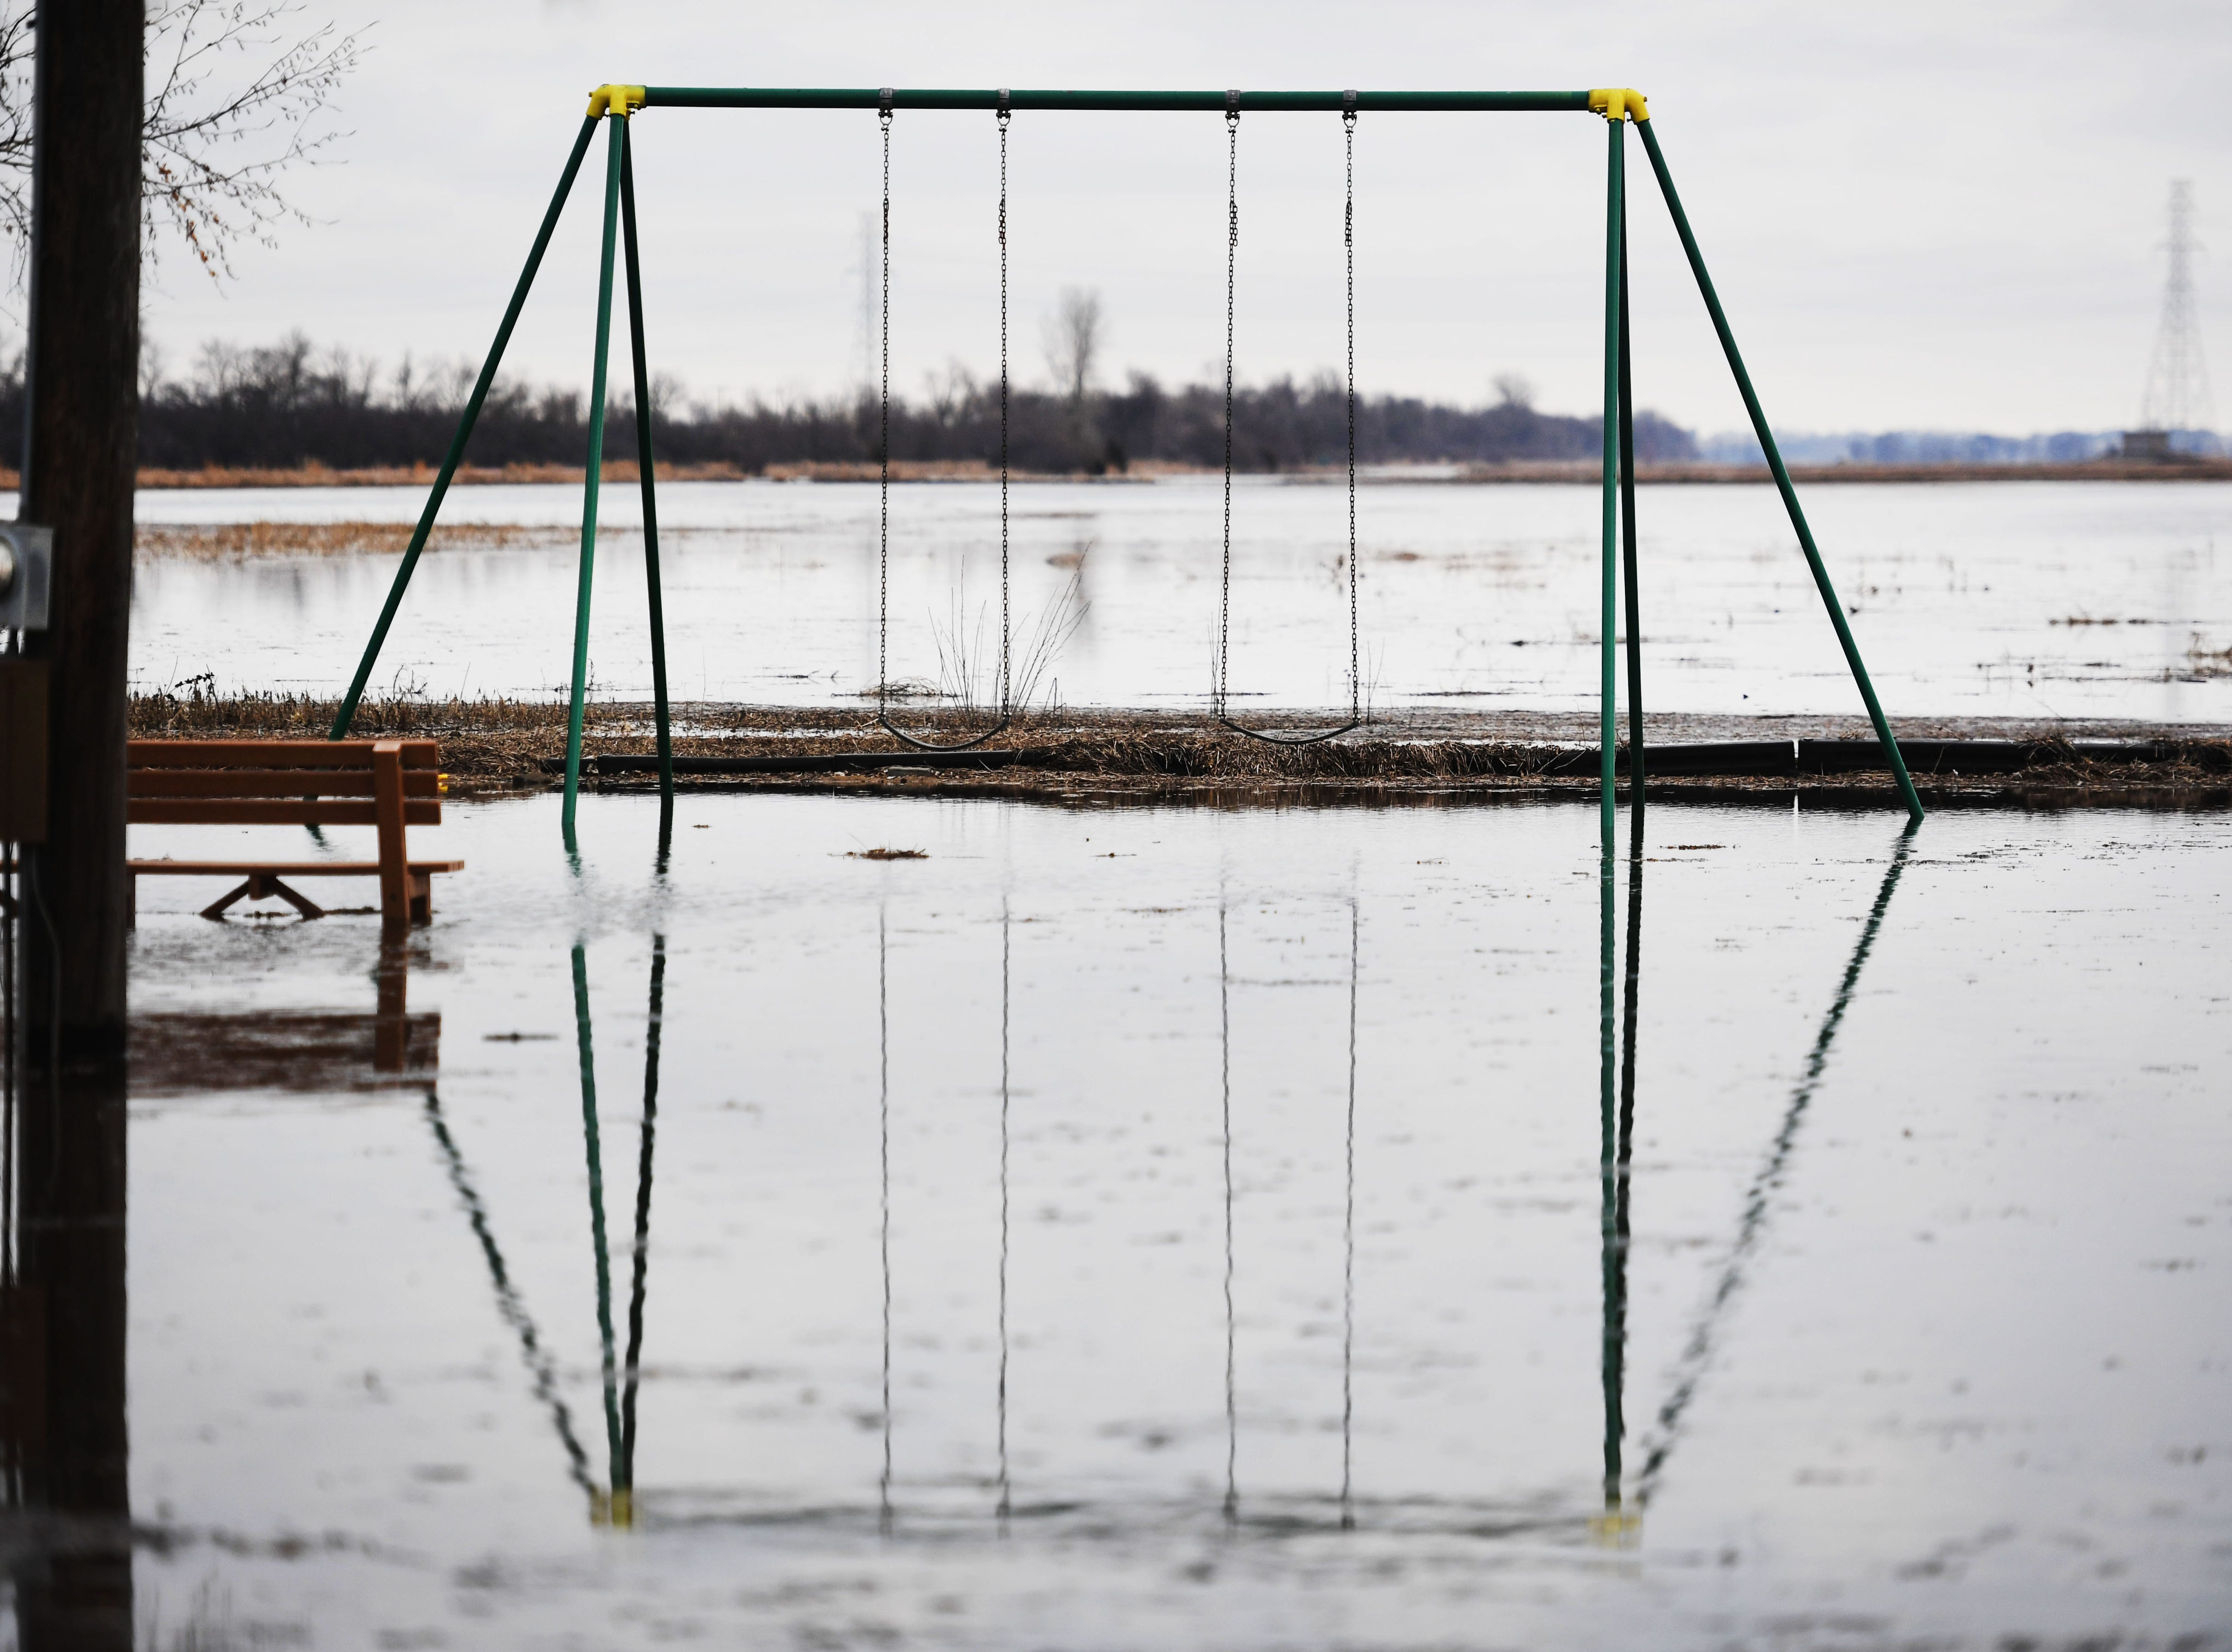 Flooding at a park in Renner Monday, March 25, in Renner, S.D.